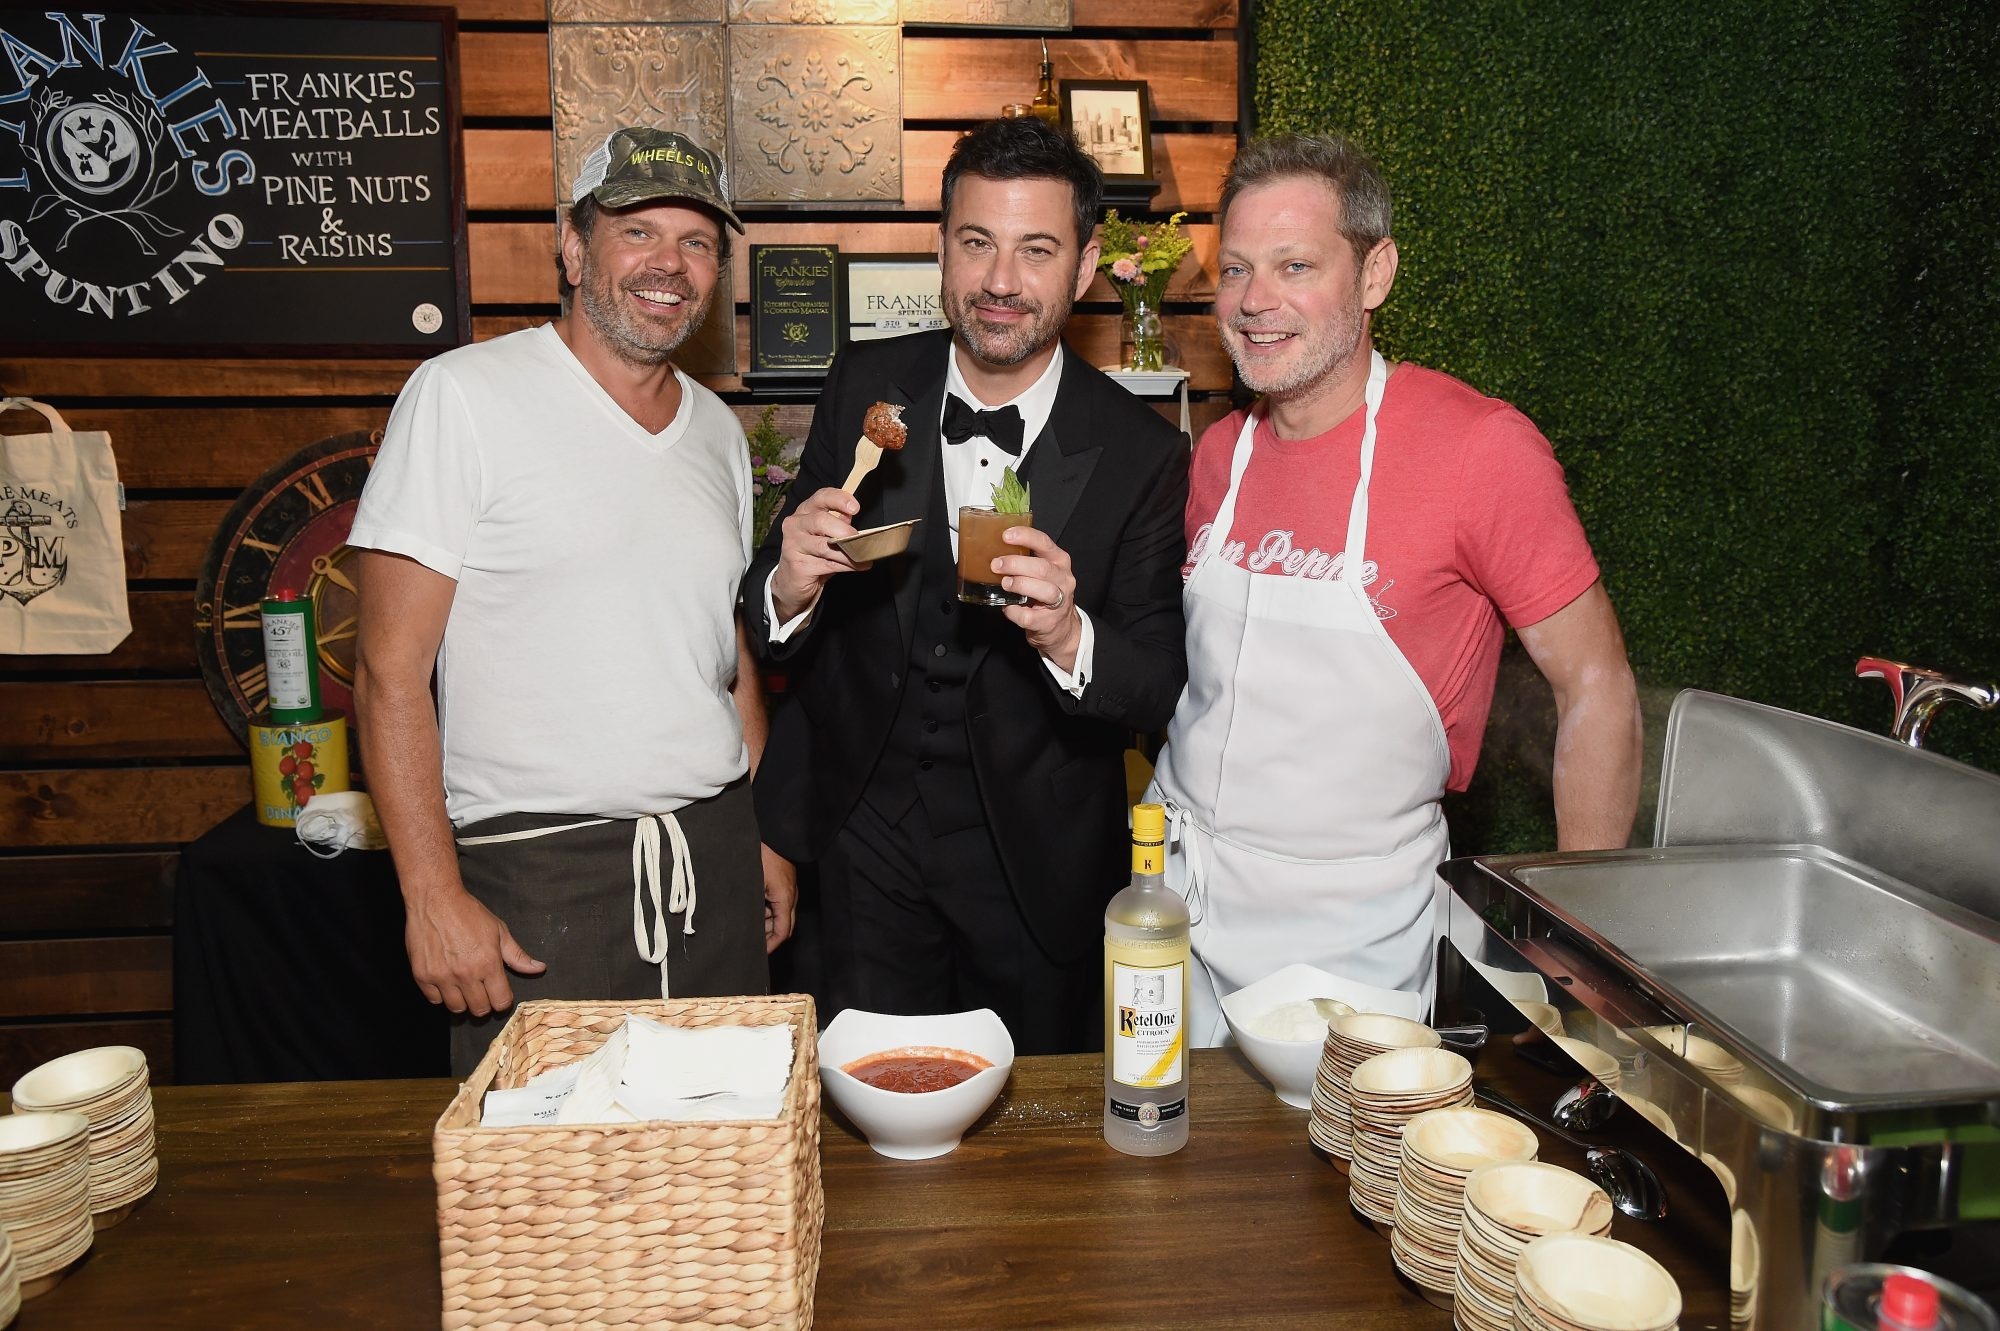 How to Make the Meatballs from Jimmy Kimmel's Emmy's Afterparty